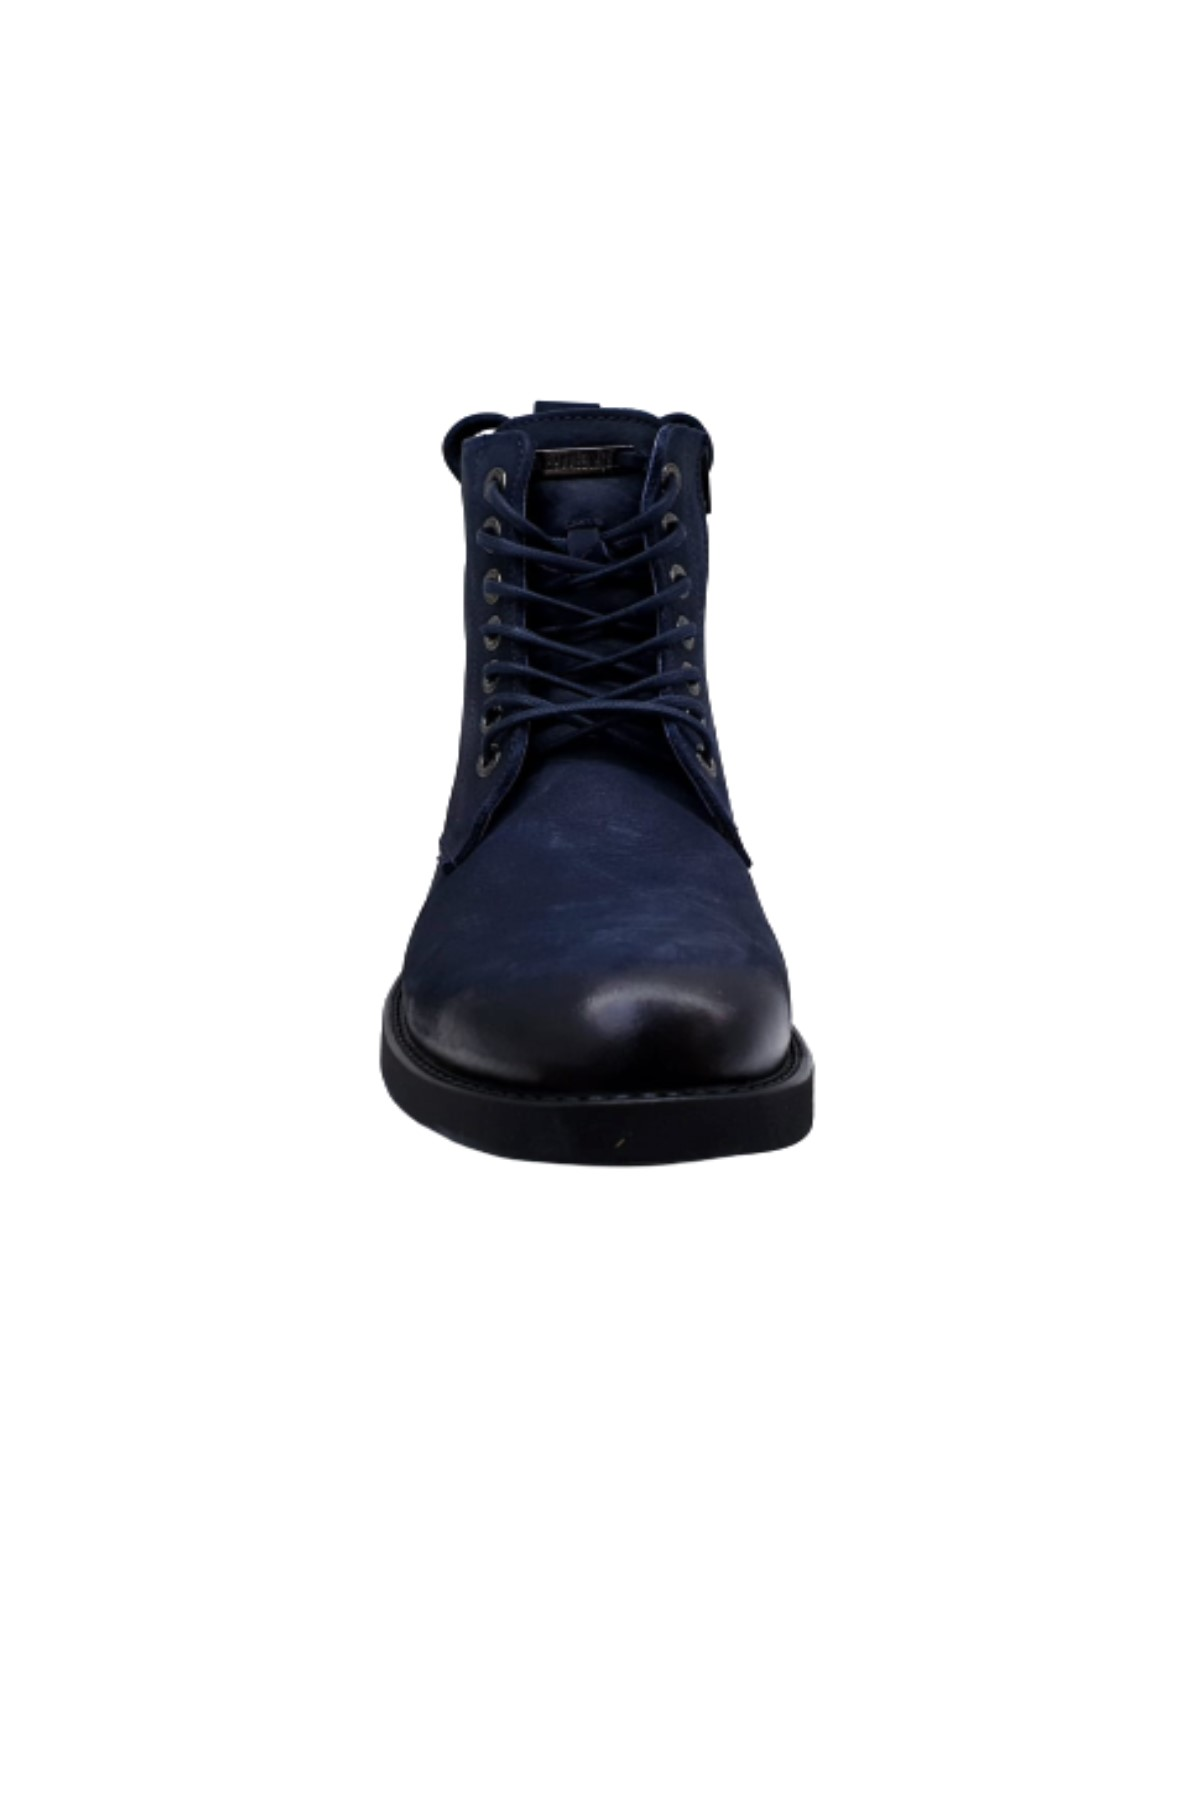 Hammer Jack Male Genuine Leather Boots 102 15200-M 2